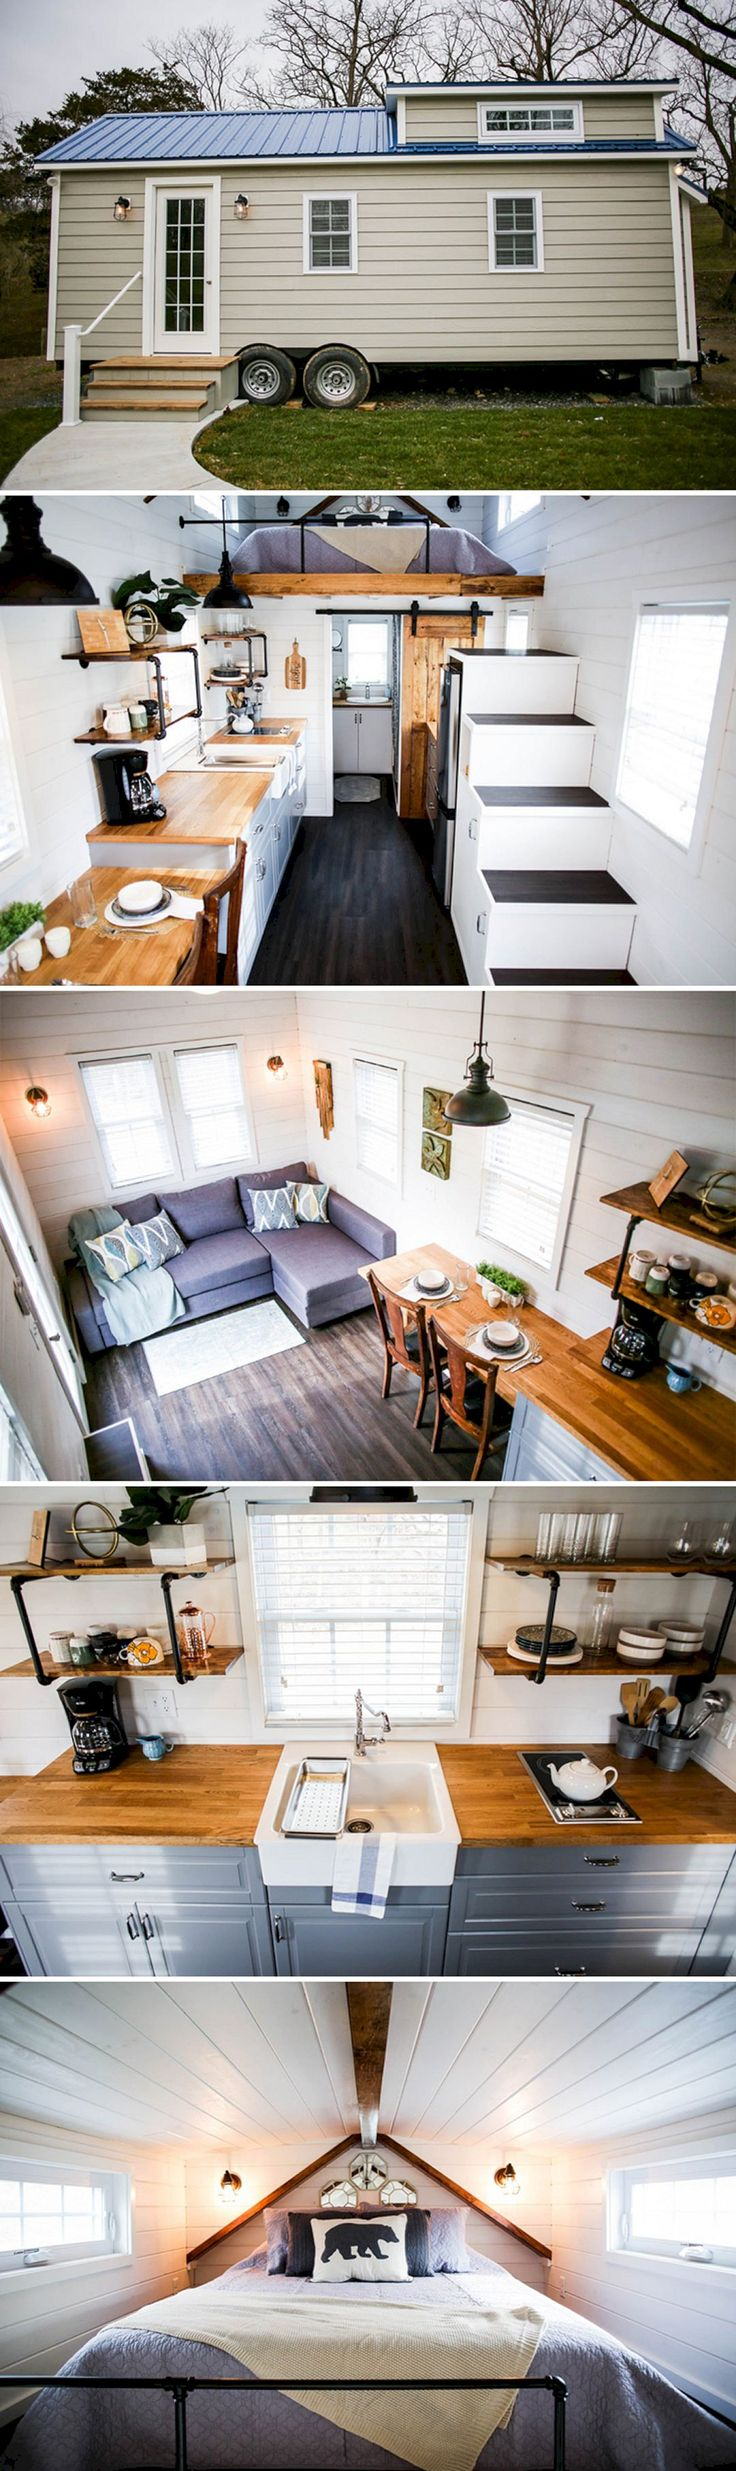 Marvelous and impressive tiny houses design that maximize style and function no 28